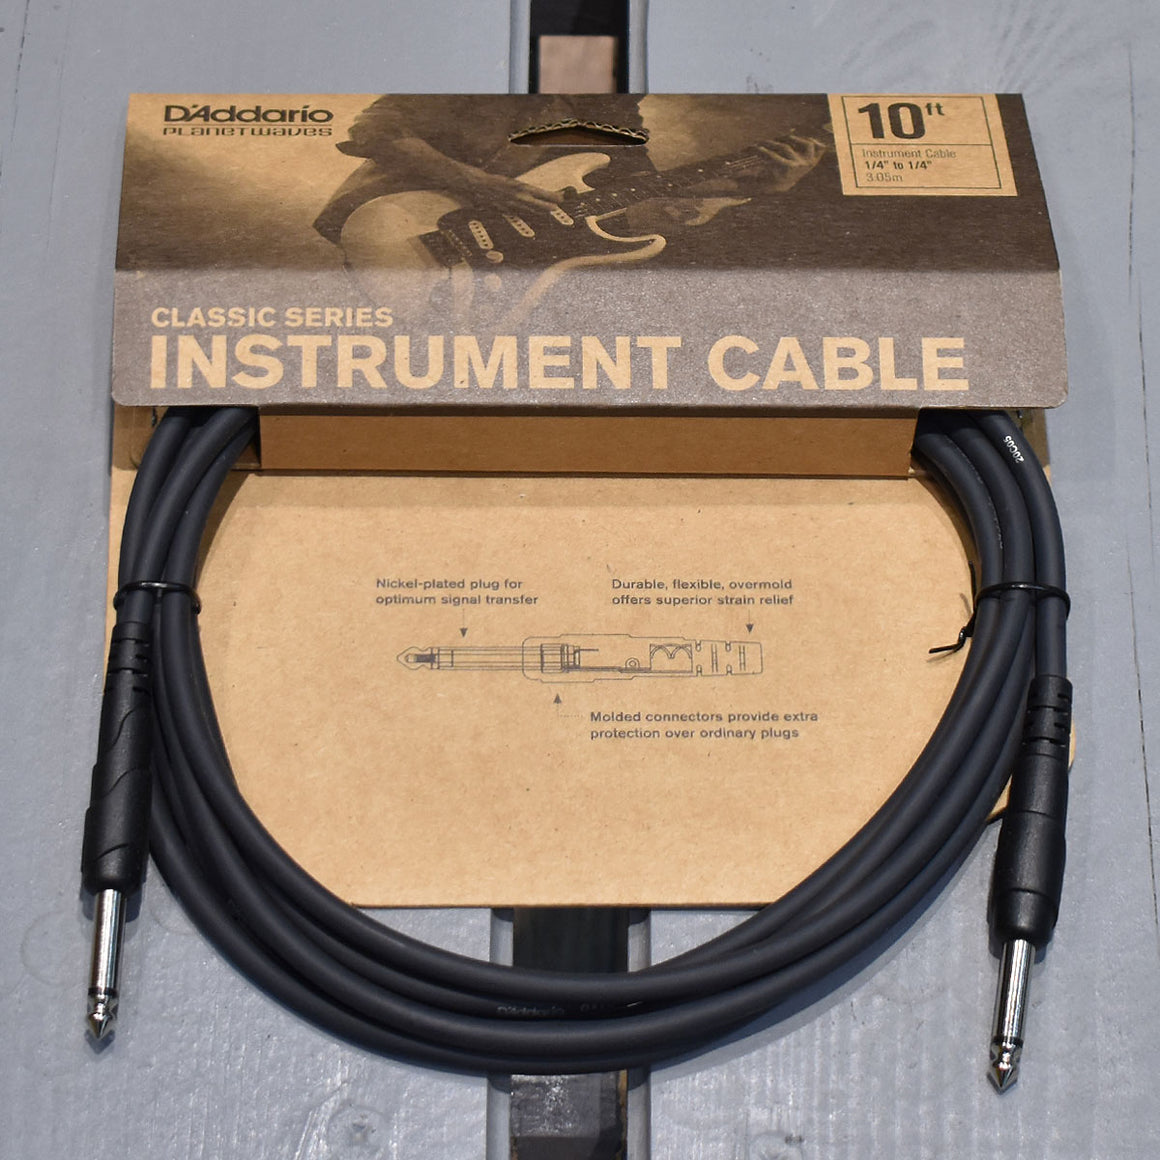 D'Addario Classic Series 10ft Straight Instrument Cable